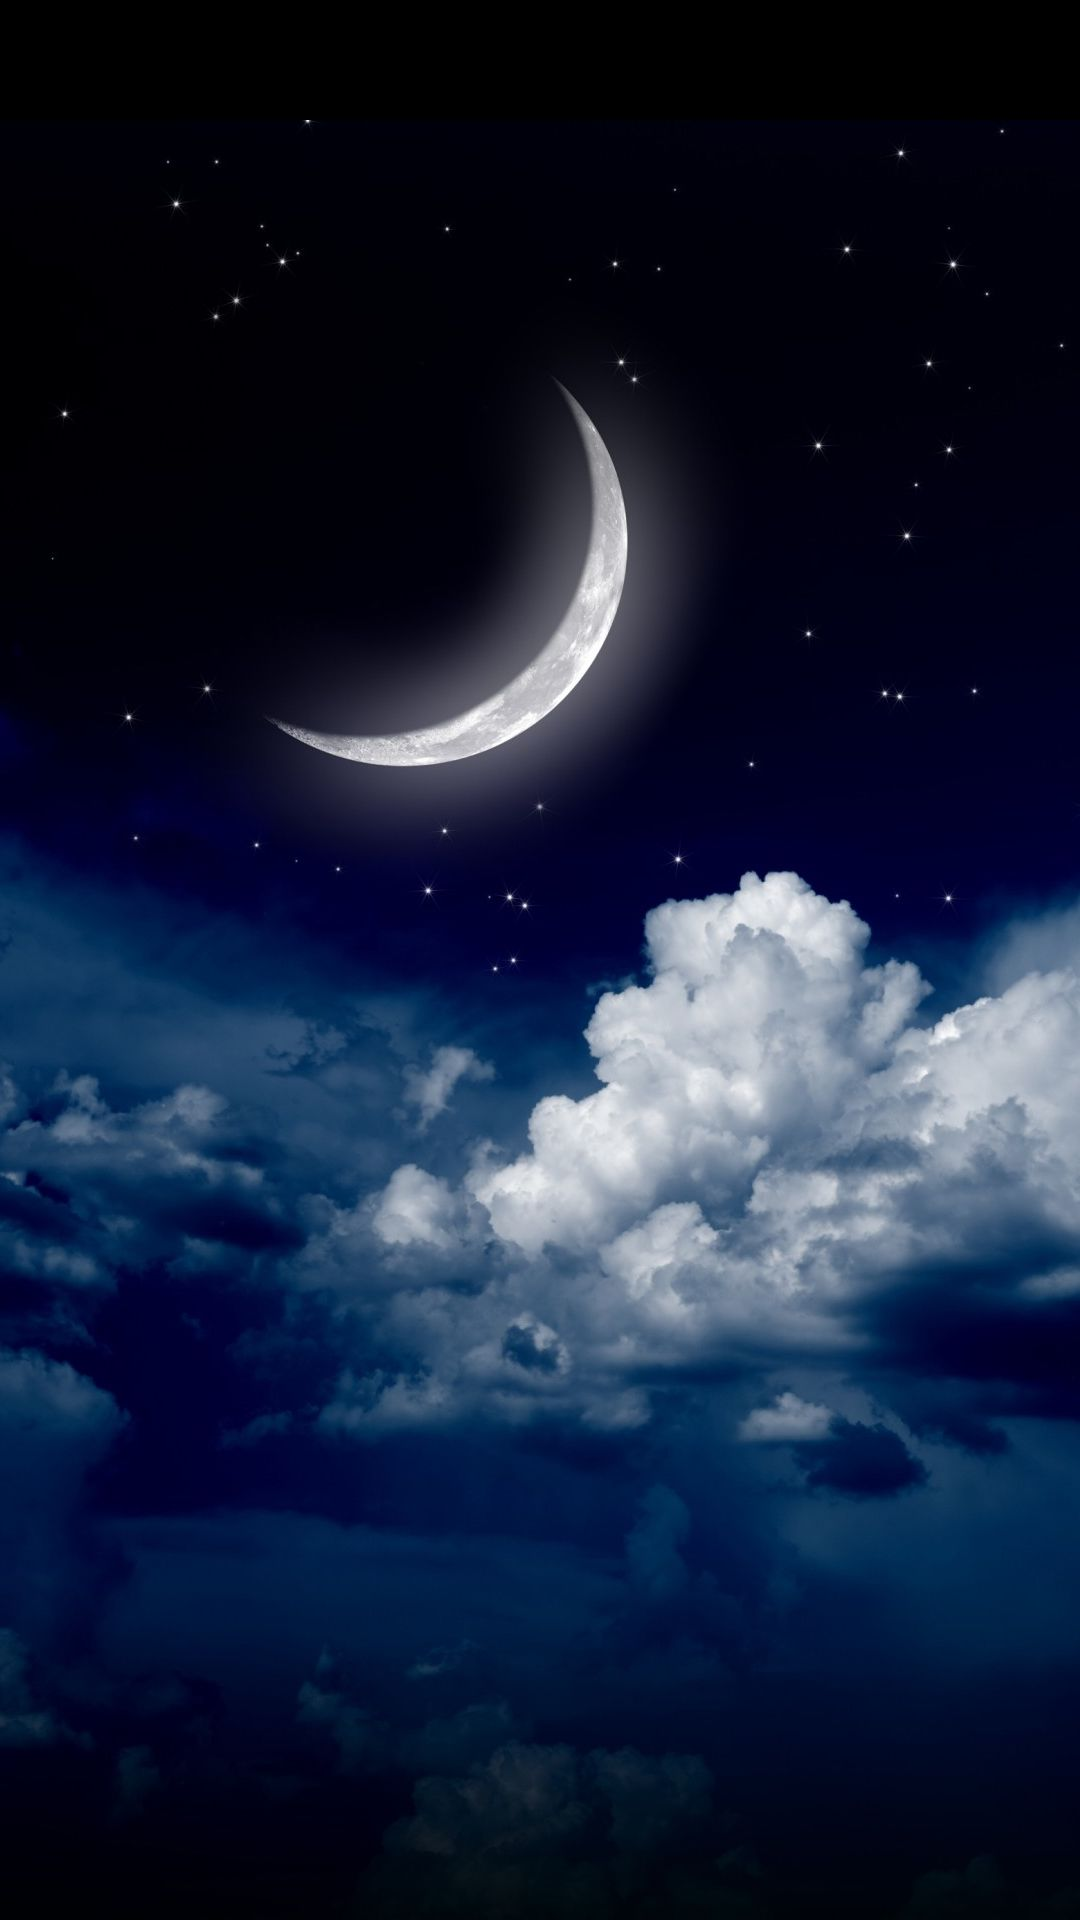 Http Www Vactualpapers Com Gallery Moon Over The Clouds Mobile Hd Wallpaper Night Sky Wallpaper Galaxy Wallpaper Sky And Clouds